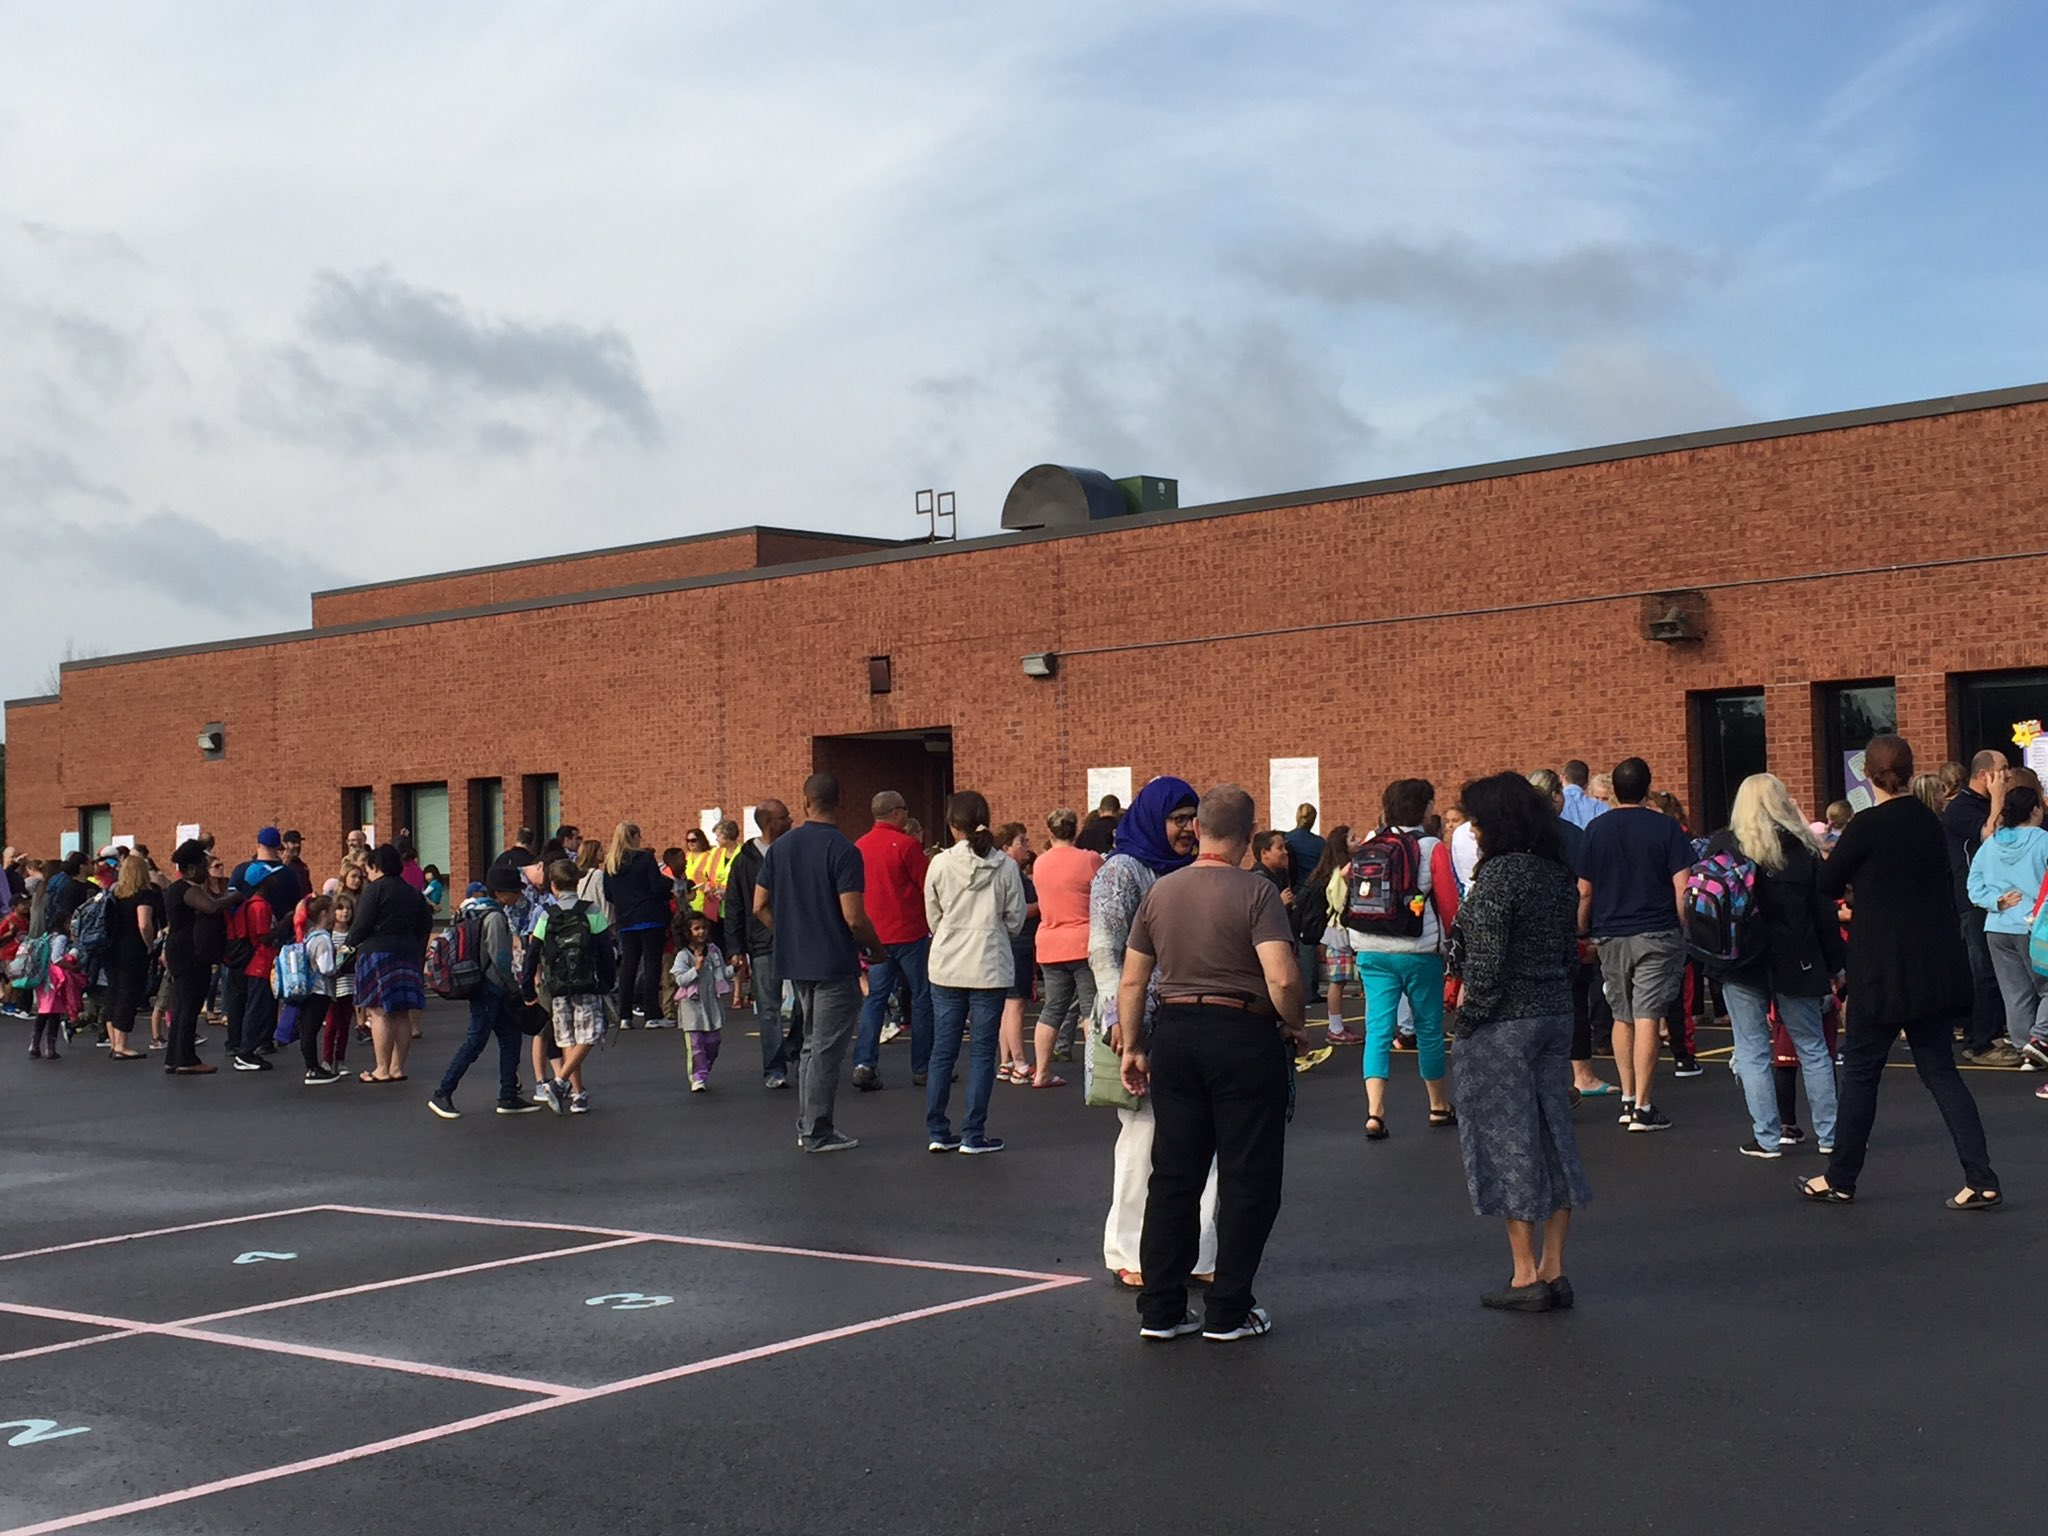 Lots of excitement in our school yard. Welcome back everyone!! #ocsbFirstday https://t.co/1jQexugYkH